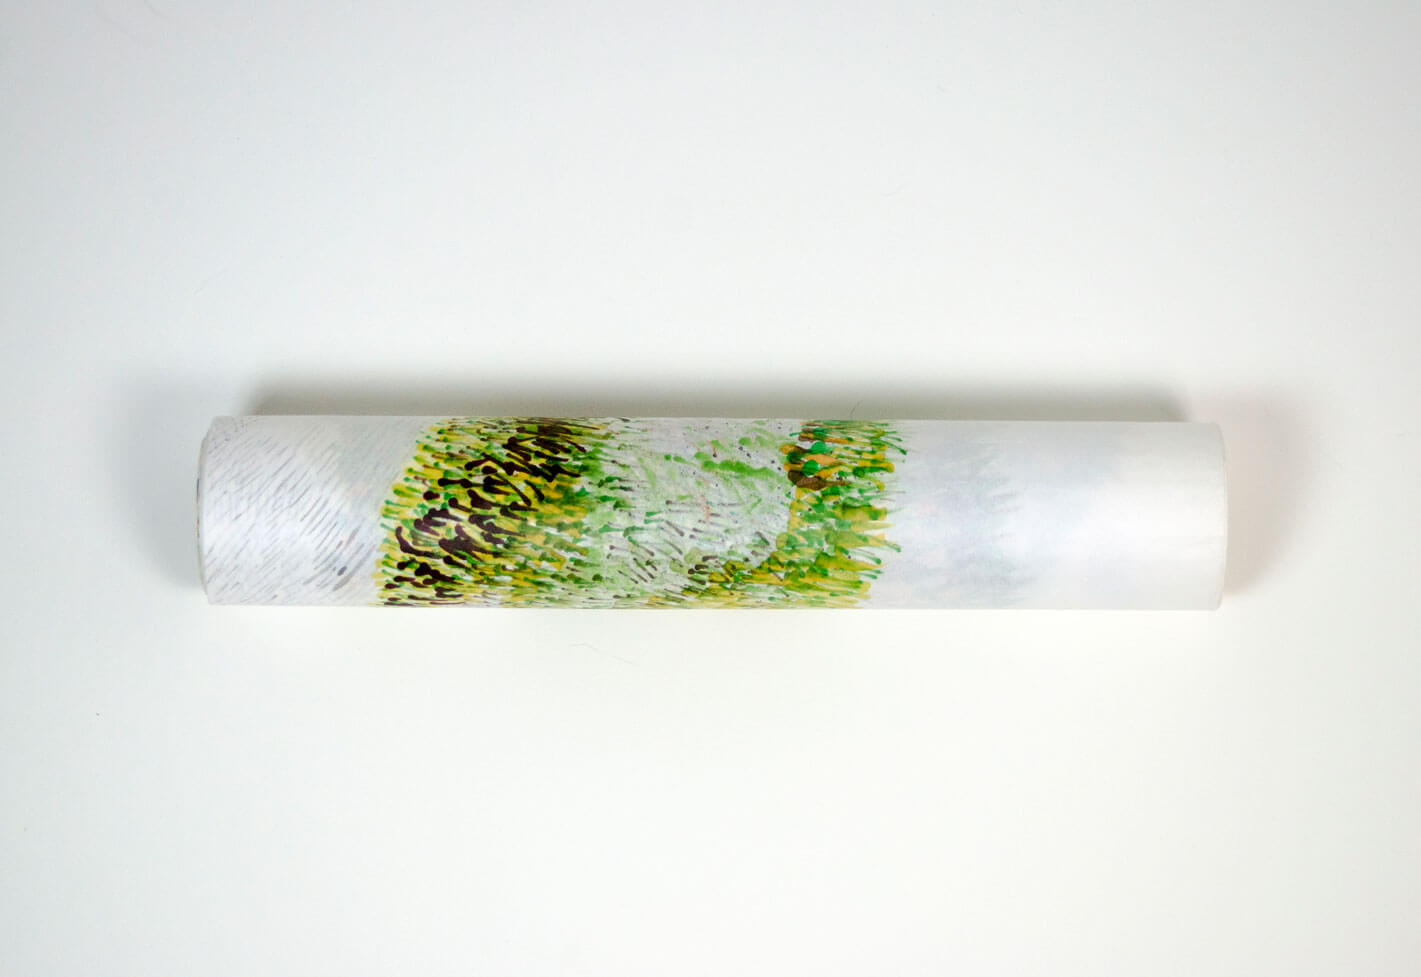 Complete roll, 6.5 m x 39.5 cm., 2018